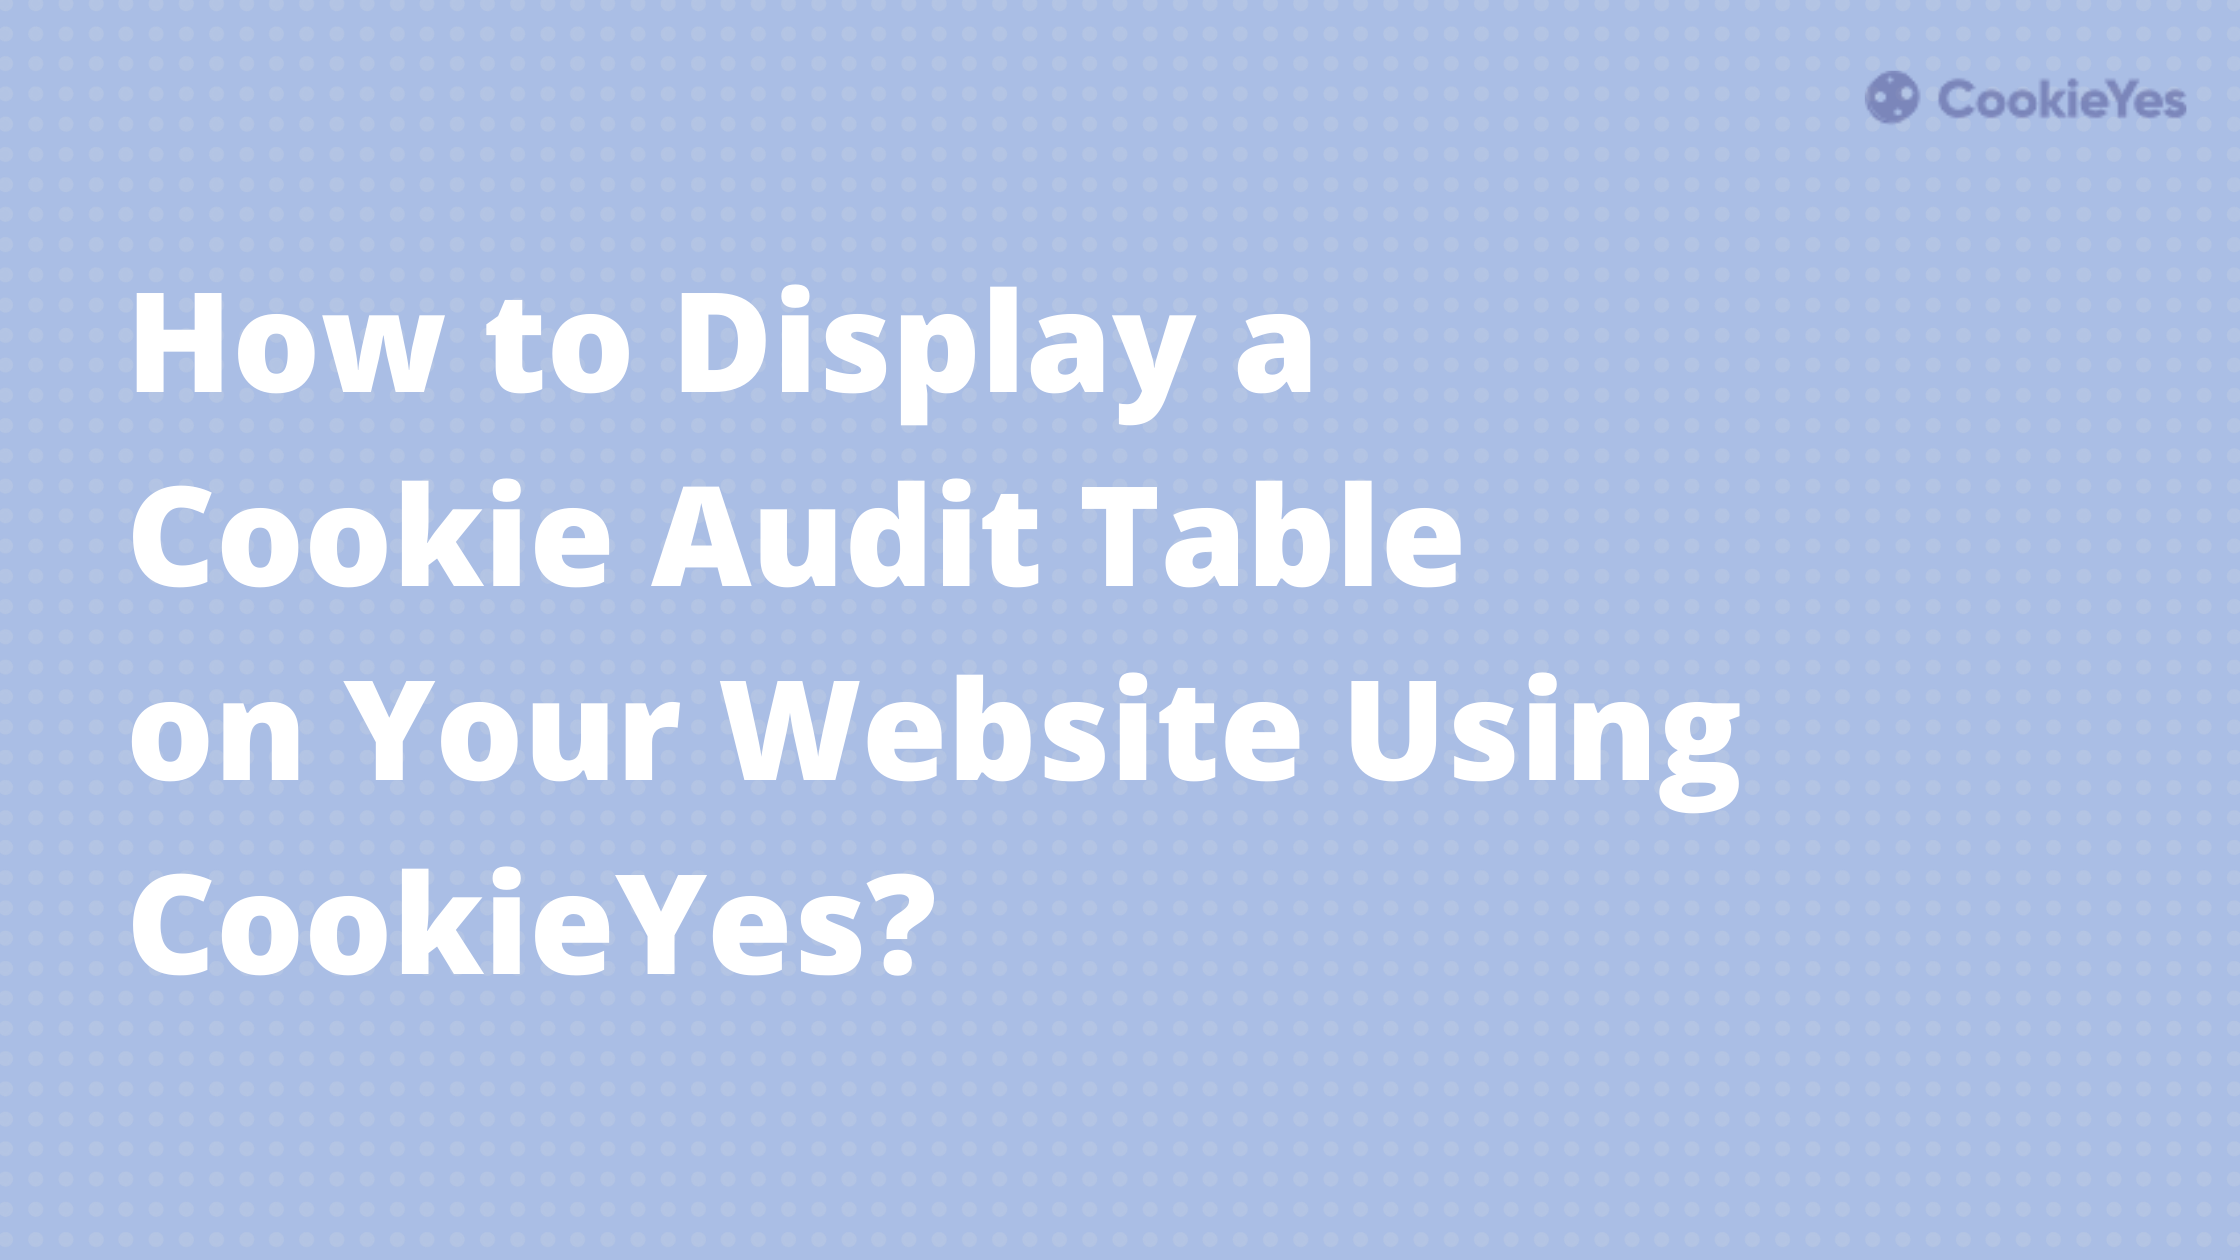 Display a cookie audit table on your website using CookieYes